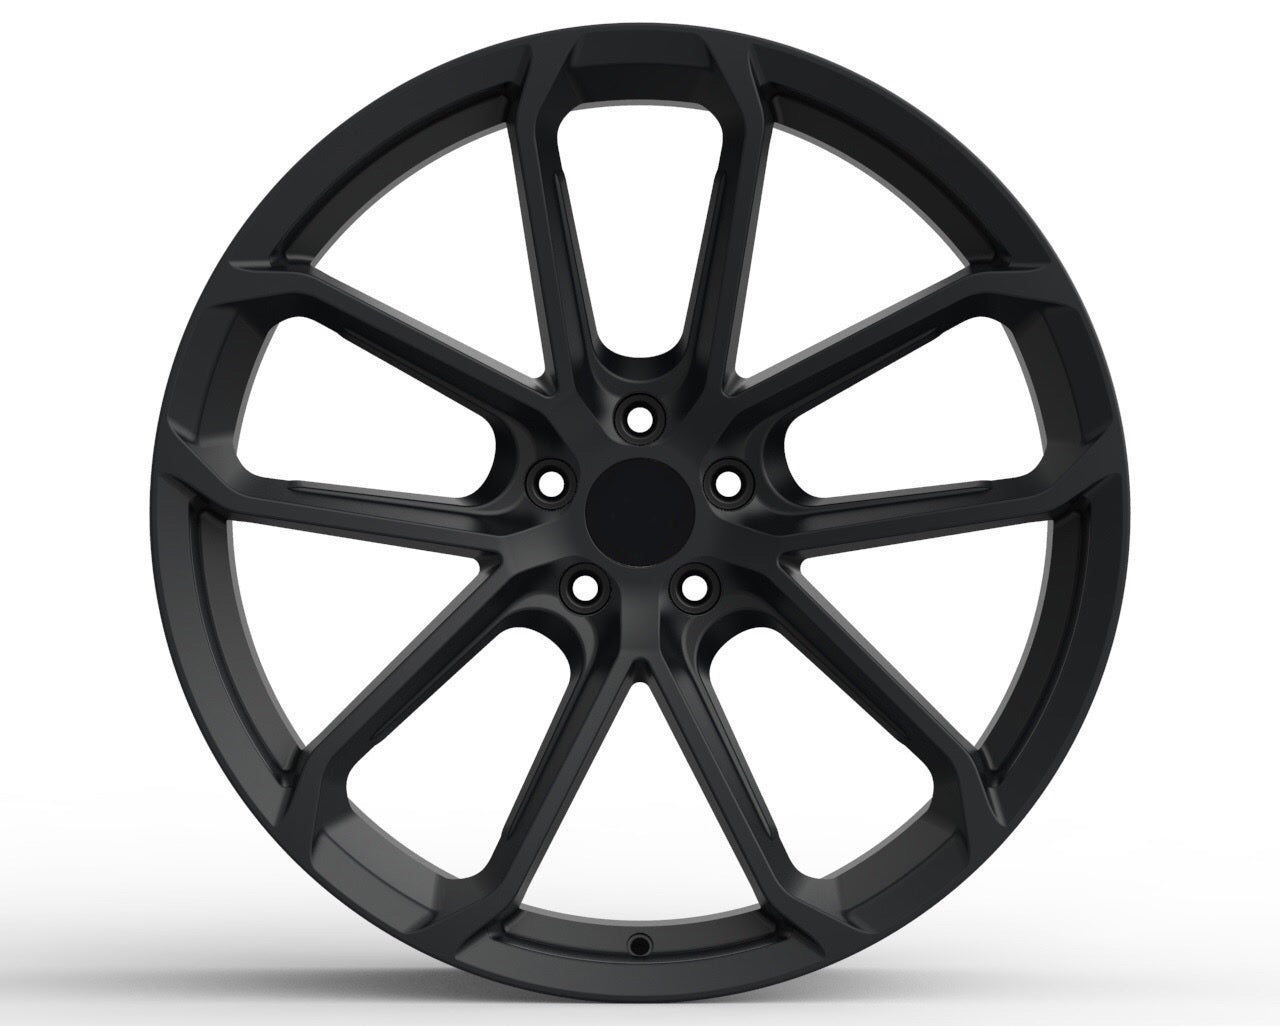 PS 221 - Aftermarket Forged Custom Made Wheels Set Type Porsche 718 GT4 with Graphite Coating